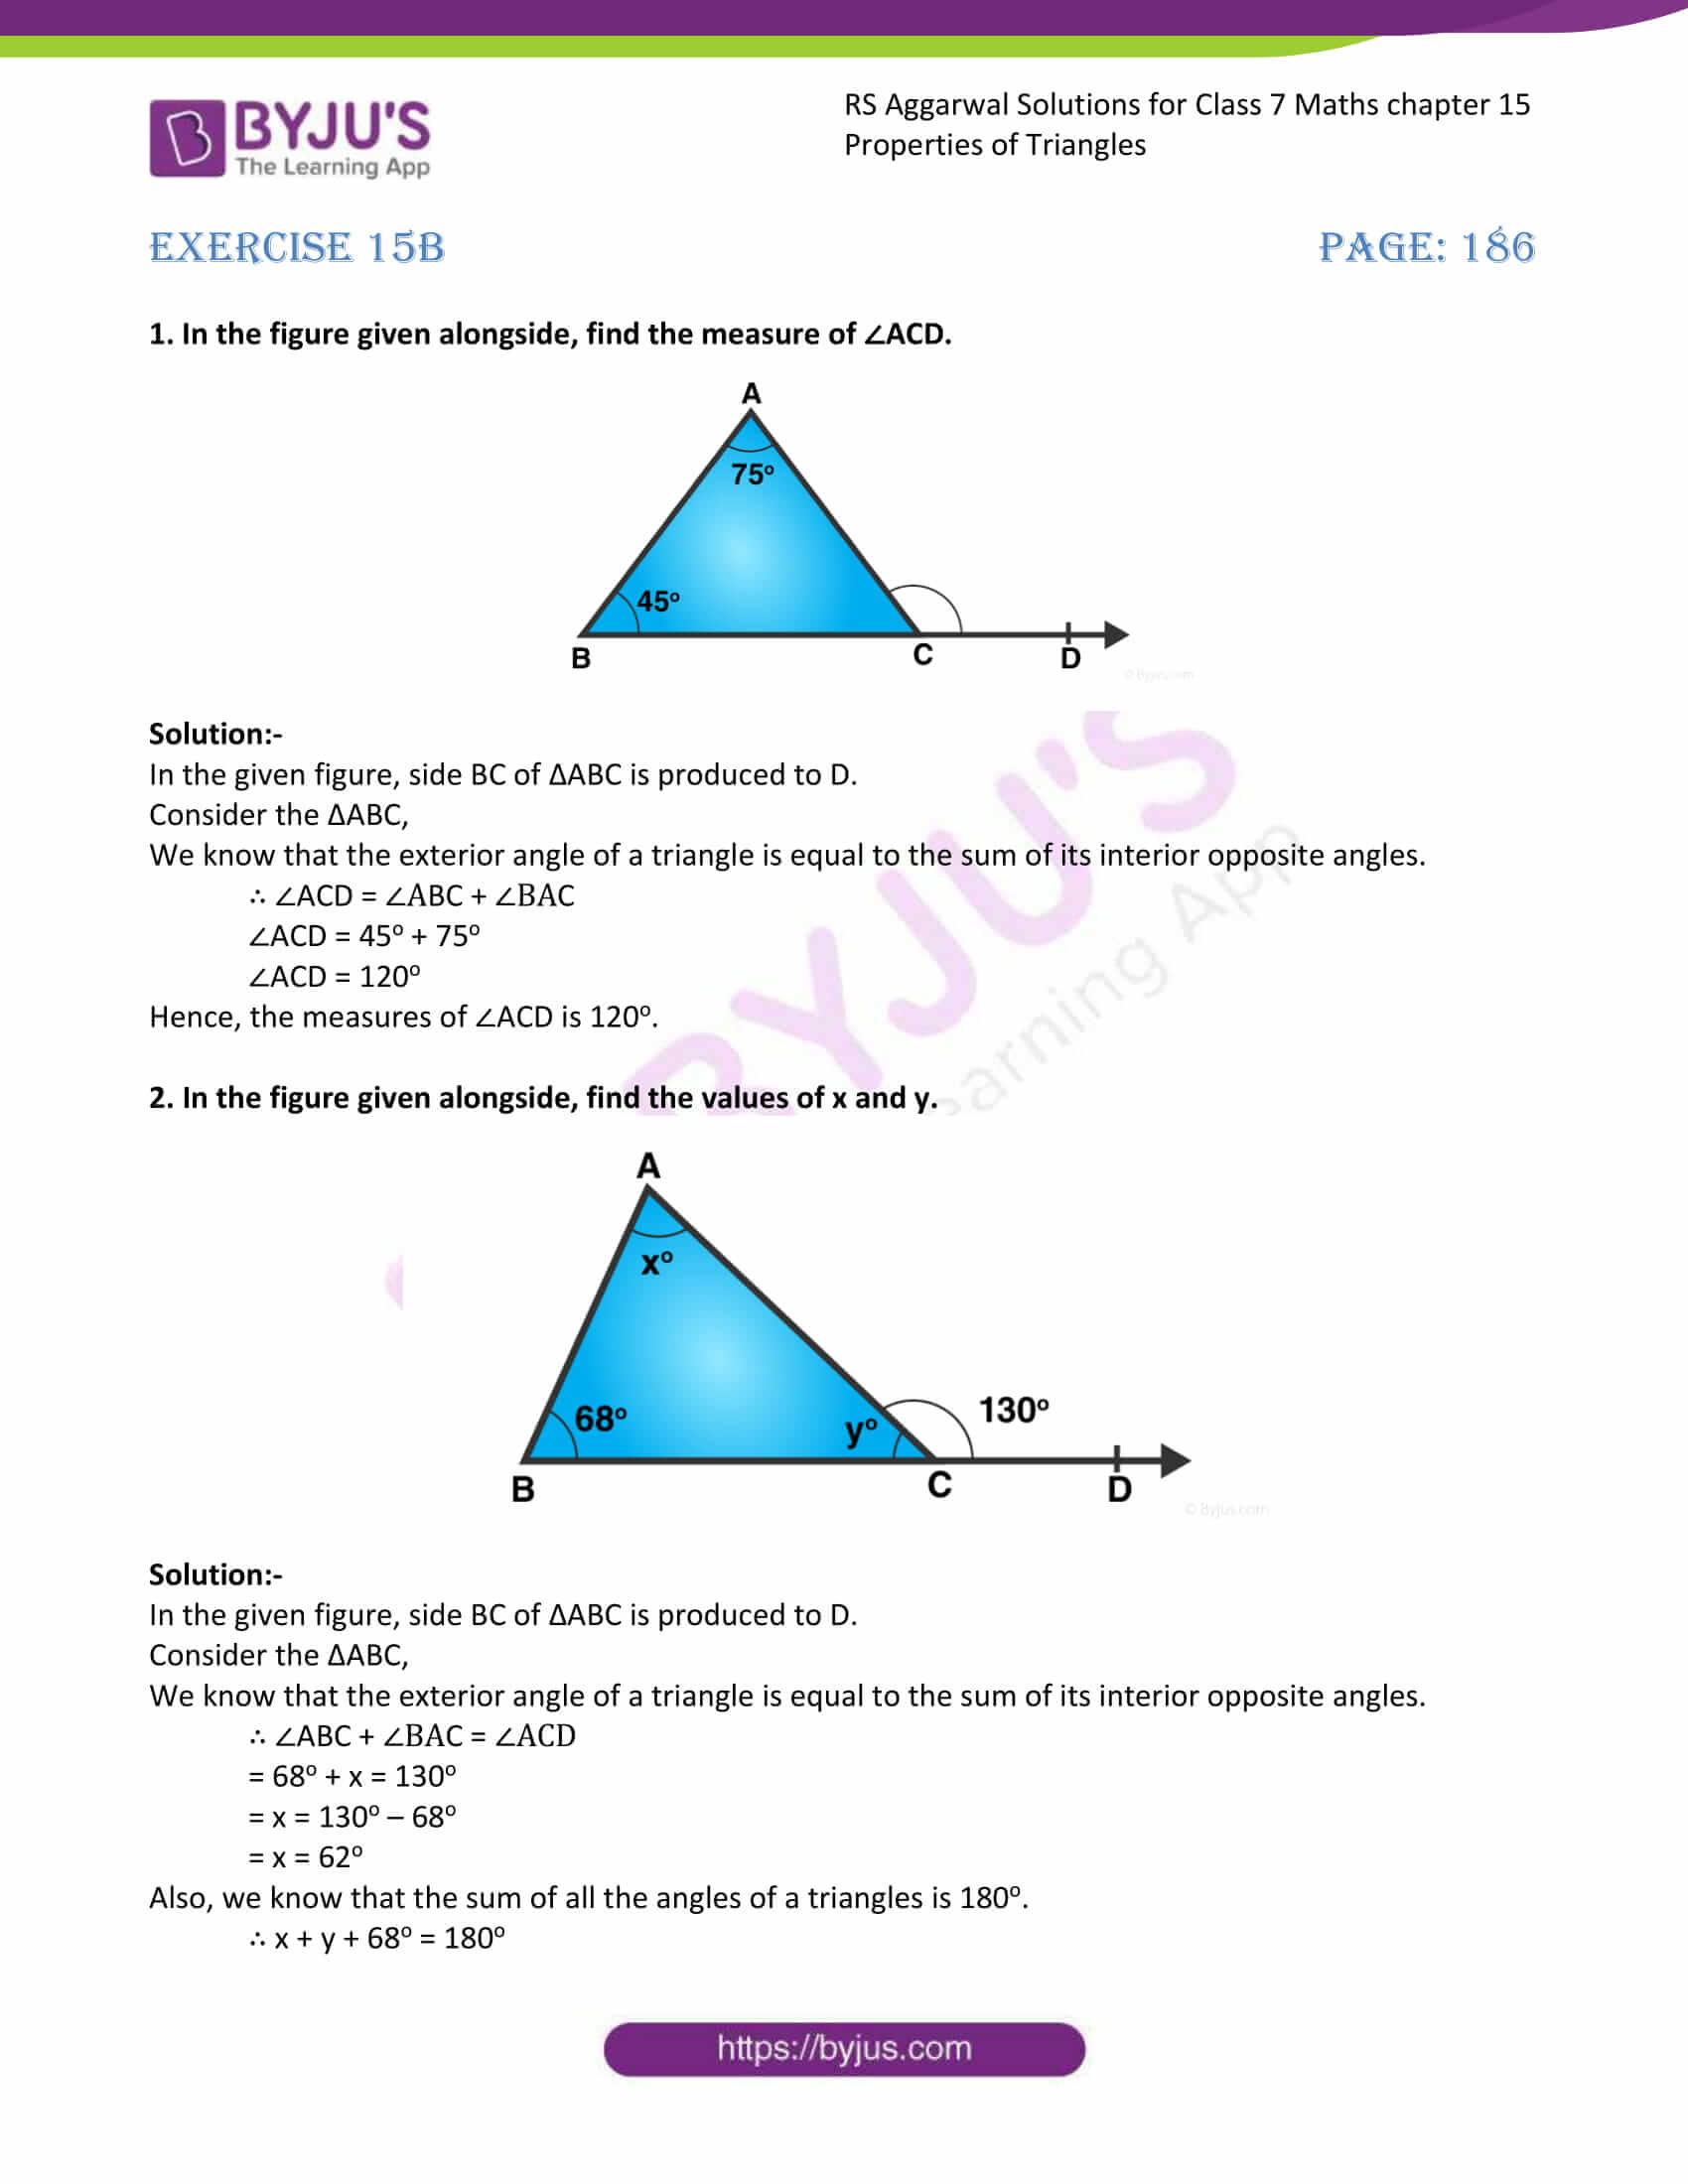 RS Aggarwal Solutions Class 7 Maths Chapter 15 Exercise 15B Free Solutions 04